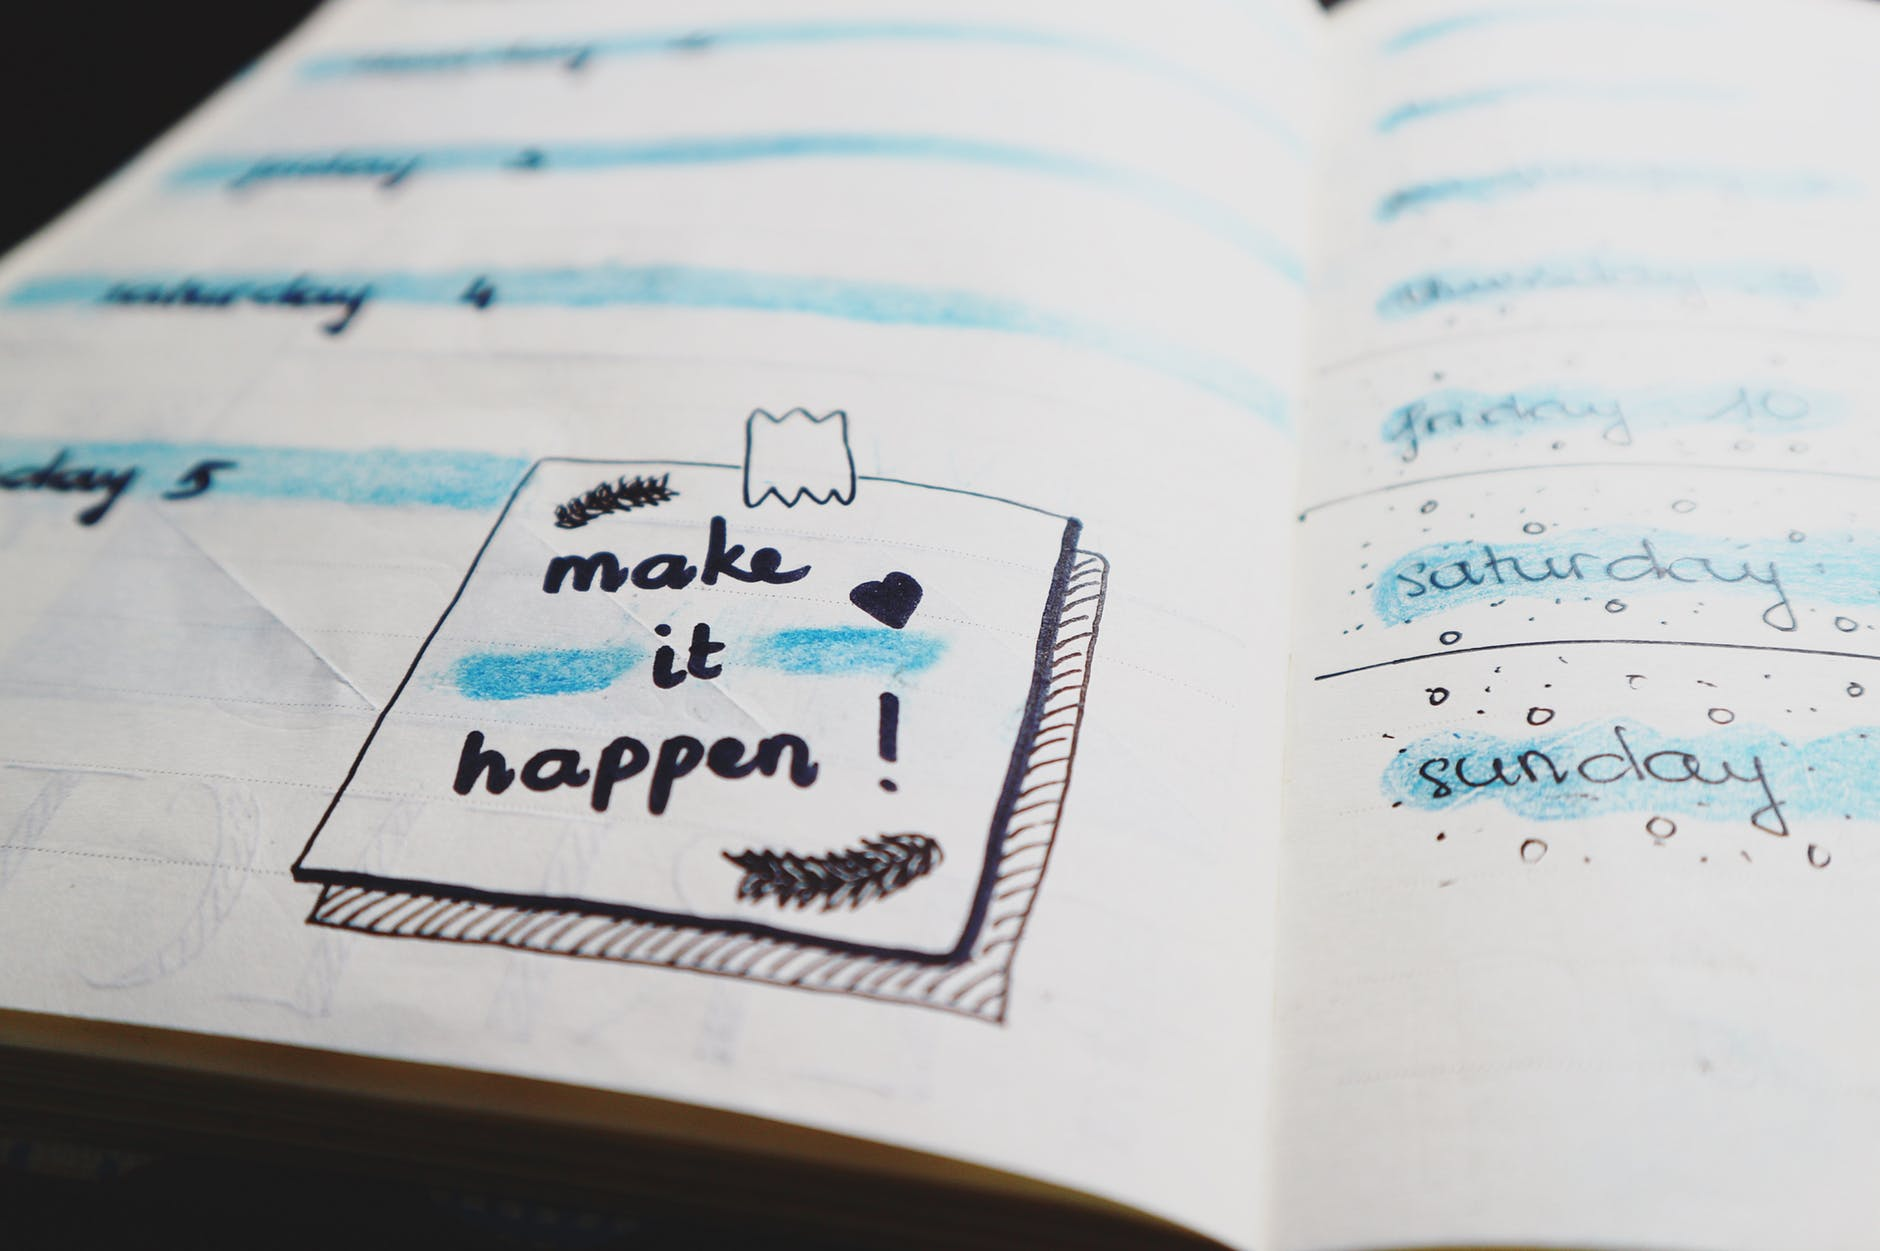 the words 'make it happen' doodled in a notebook